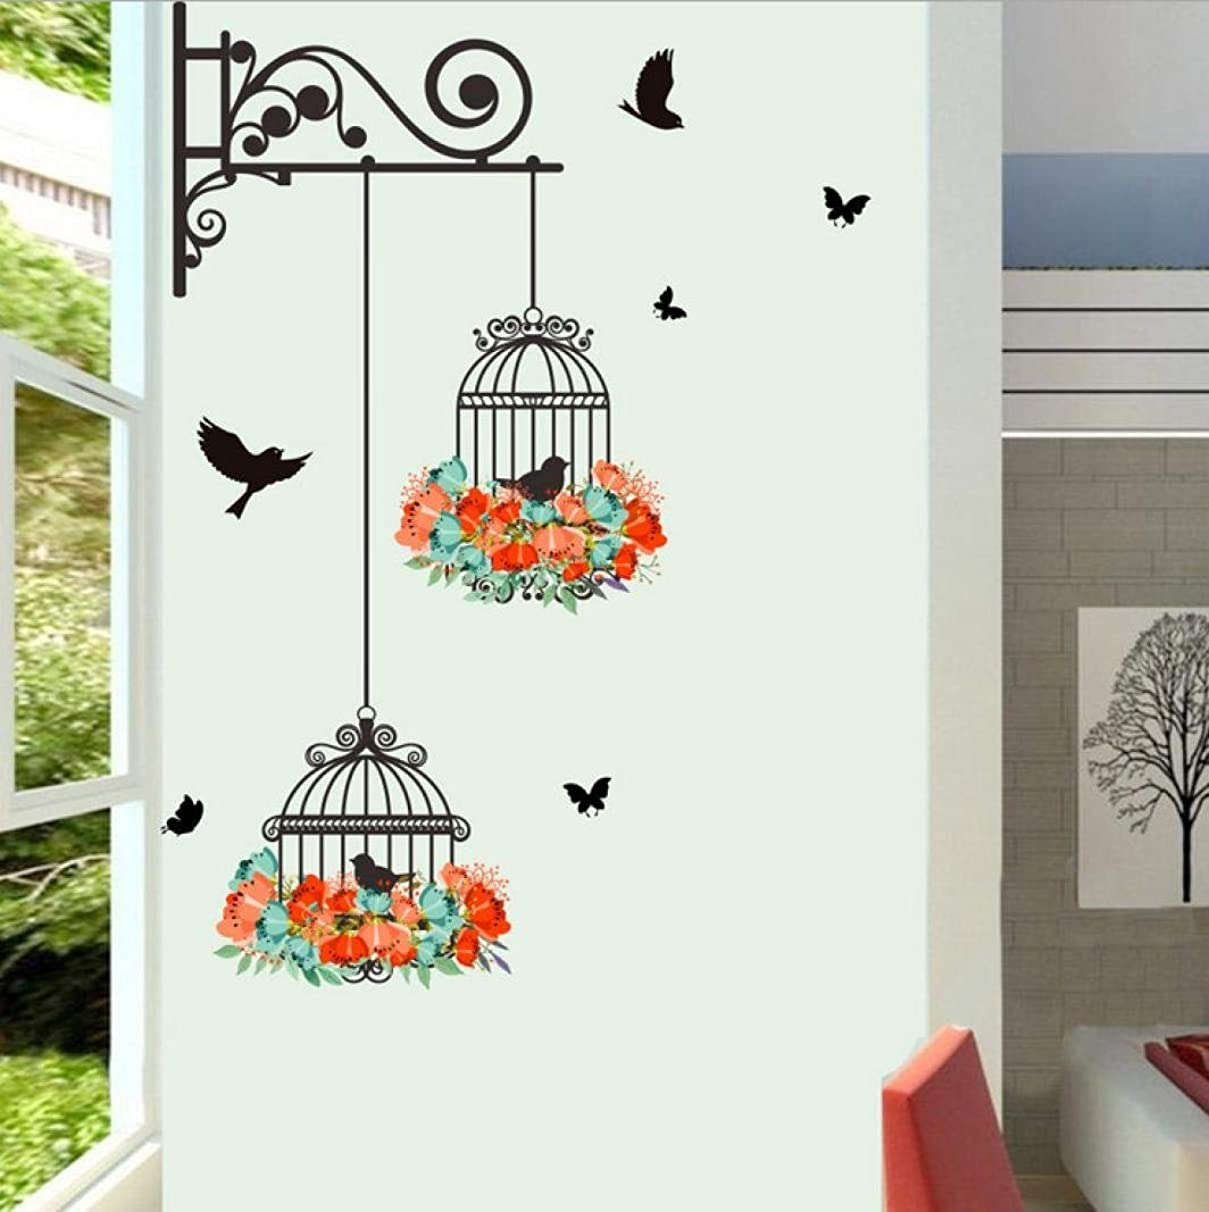 OSAYES Removable Wall Sticker for Bedroom livingroom Decal Art Home Decors - Birdcage Decorative Painting